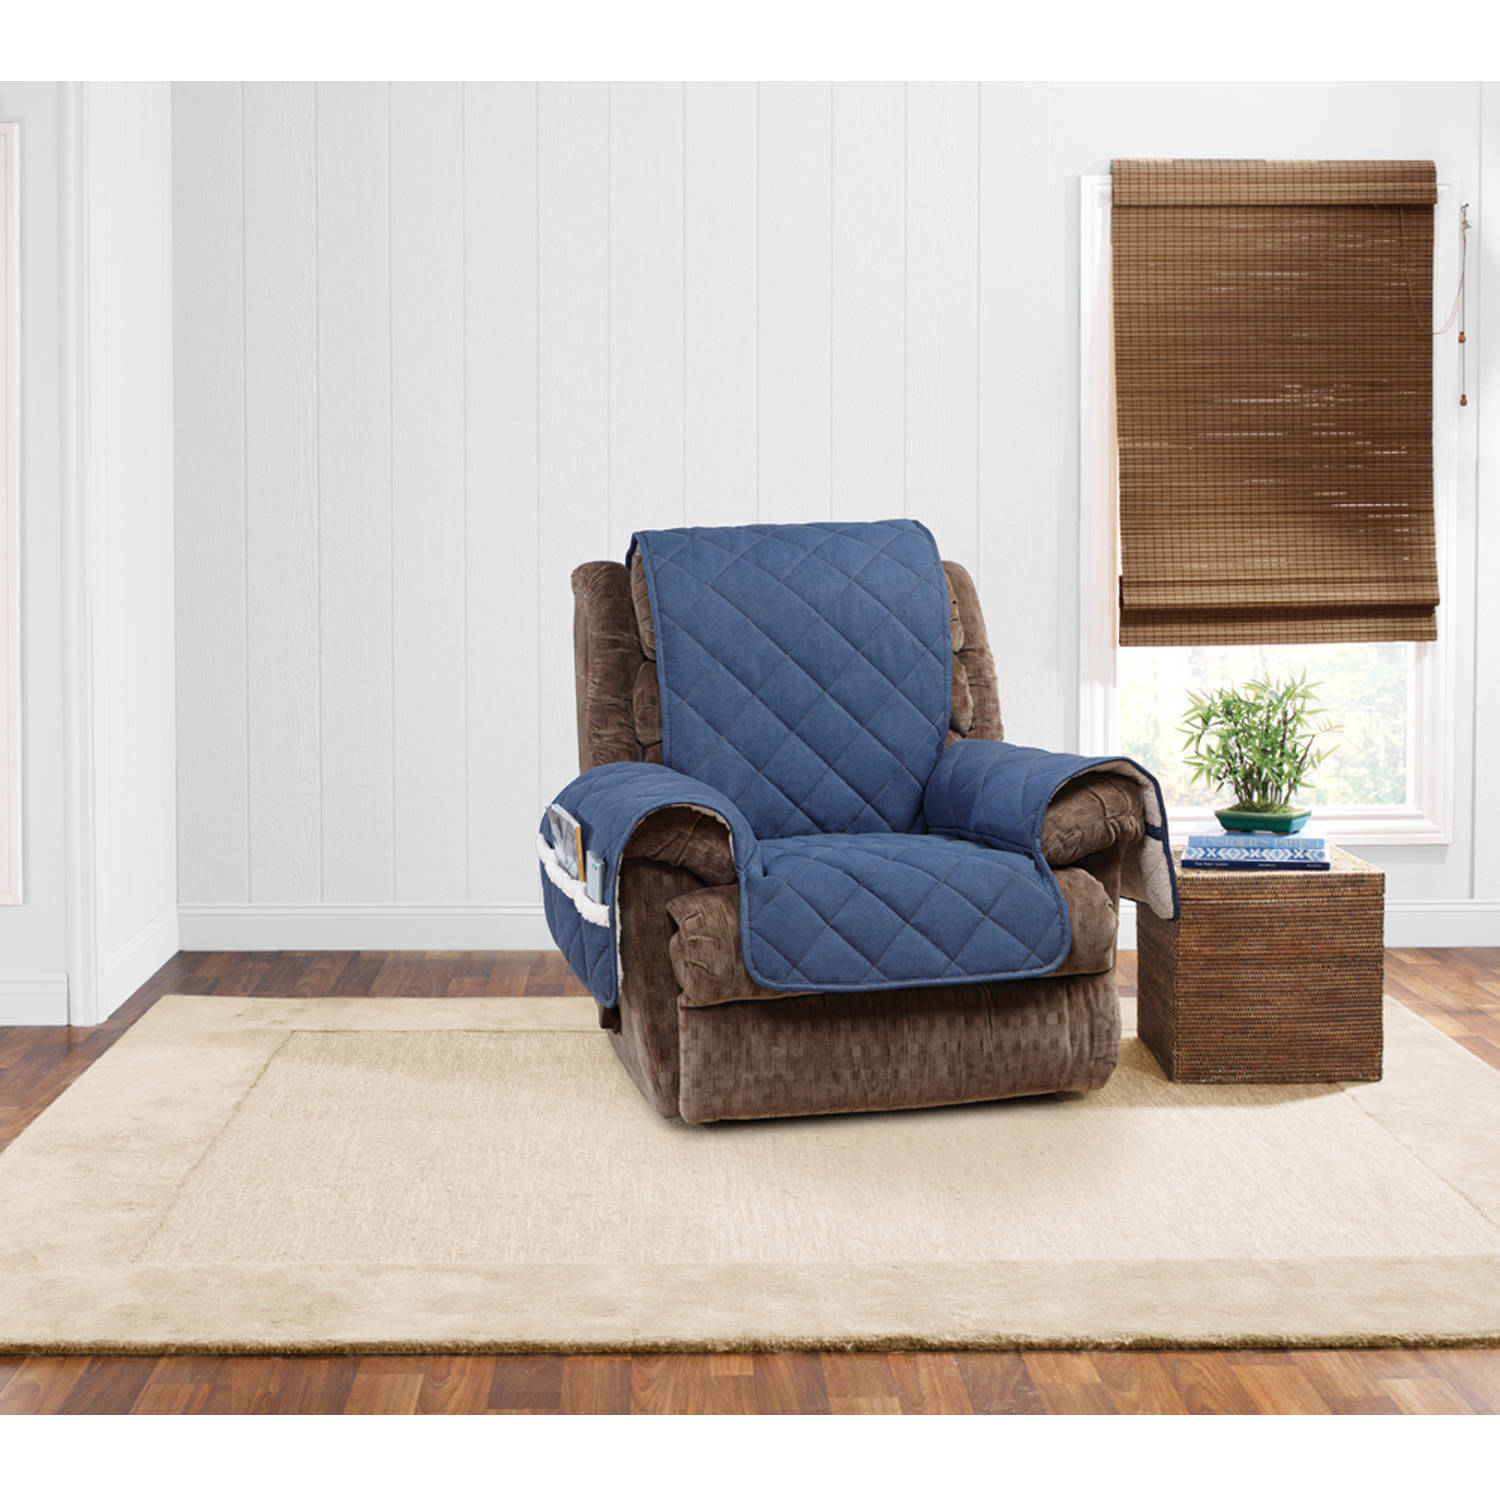 84 patio sofa cover milari bed sure fit denim sherpa recliner slipcover - walmart.com